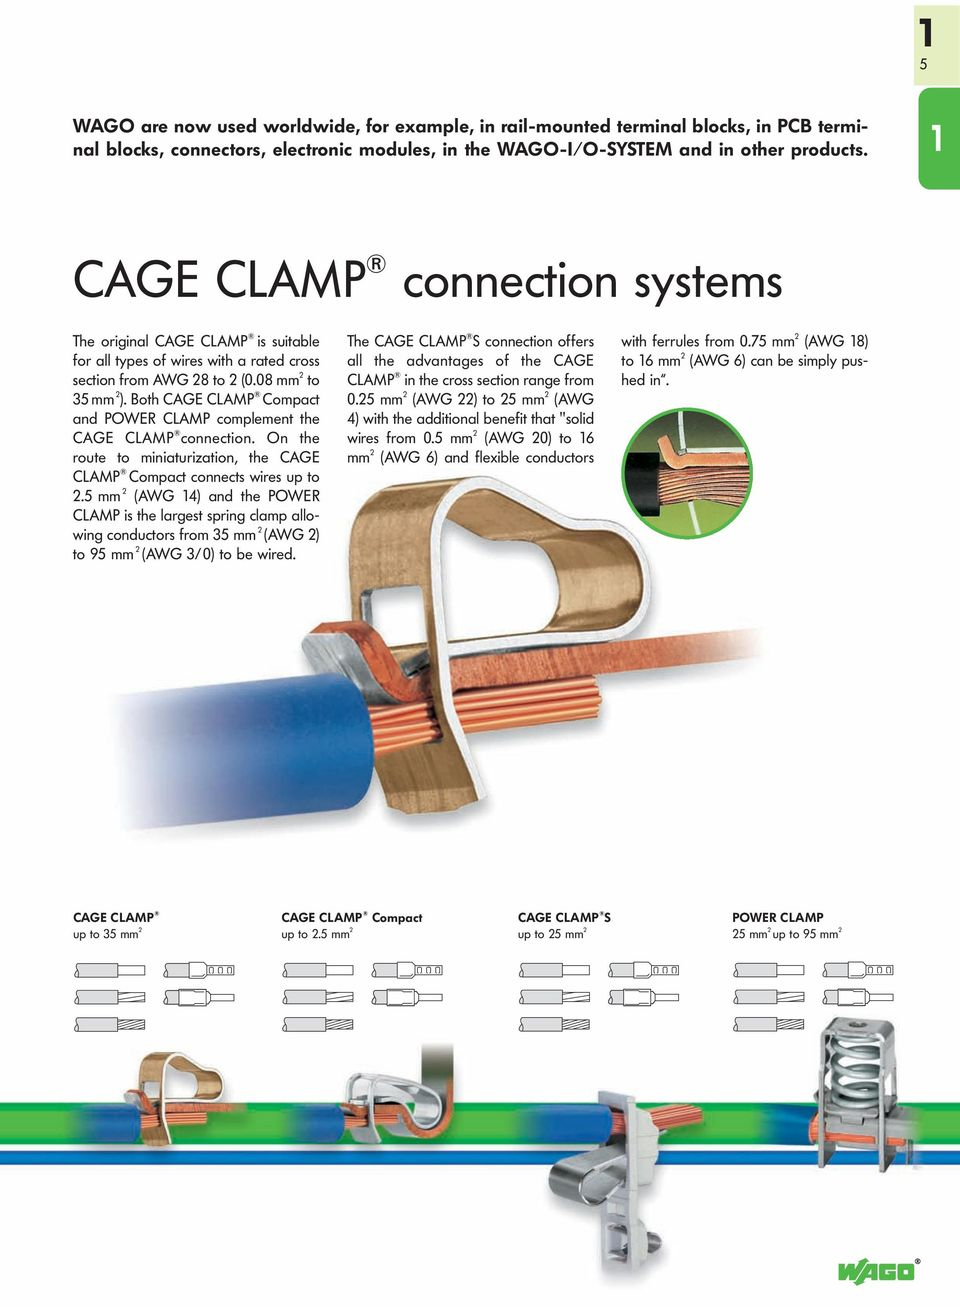 Both CAGE CLAMP Compact and POWER CLAMP complement the CAGE CLAMP connection. On the route to miniaturization, the CAGE CLAMP Compact connects wires up to 2.